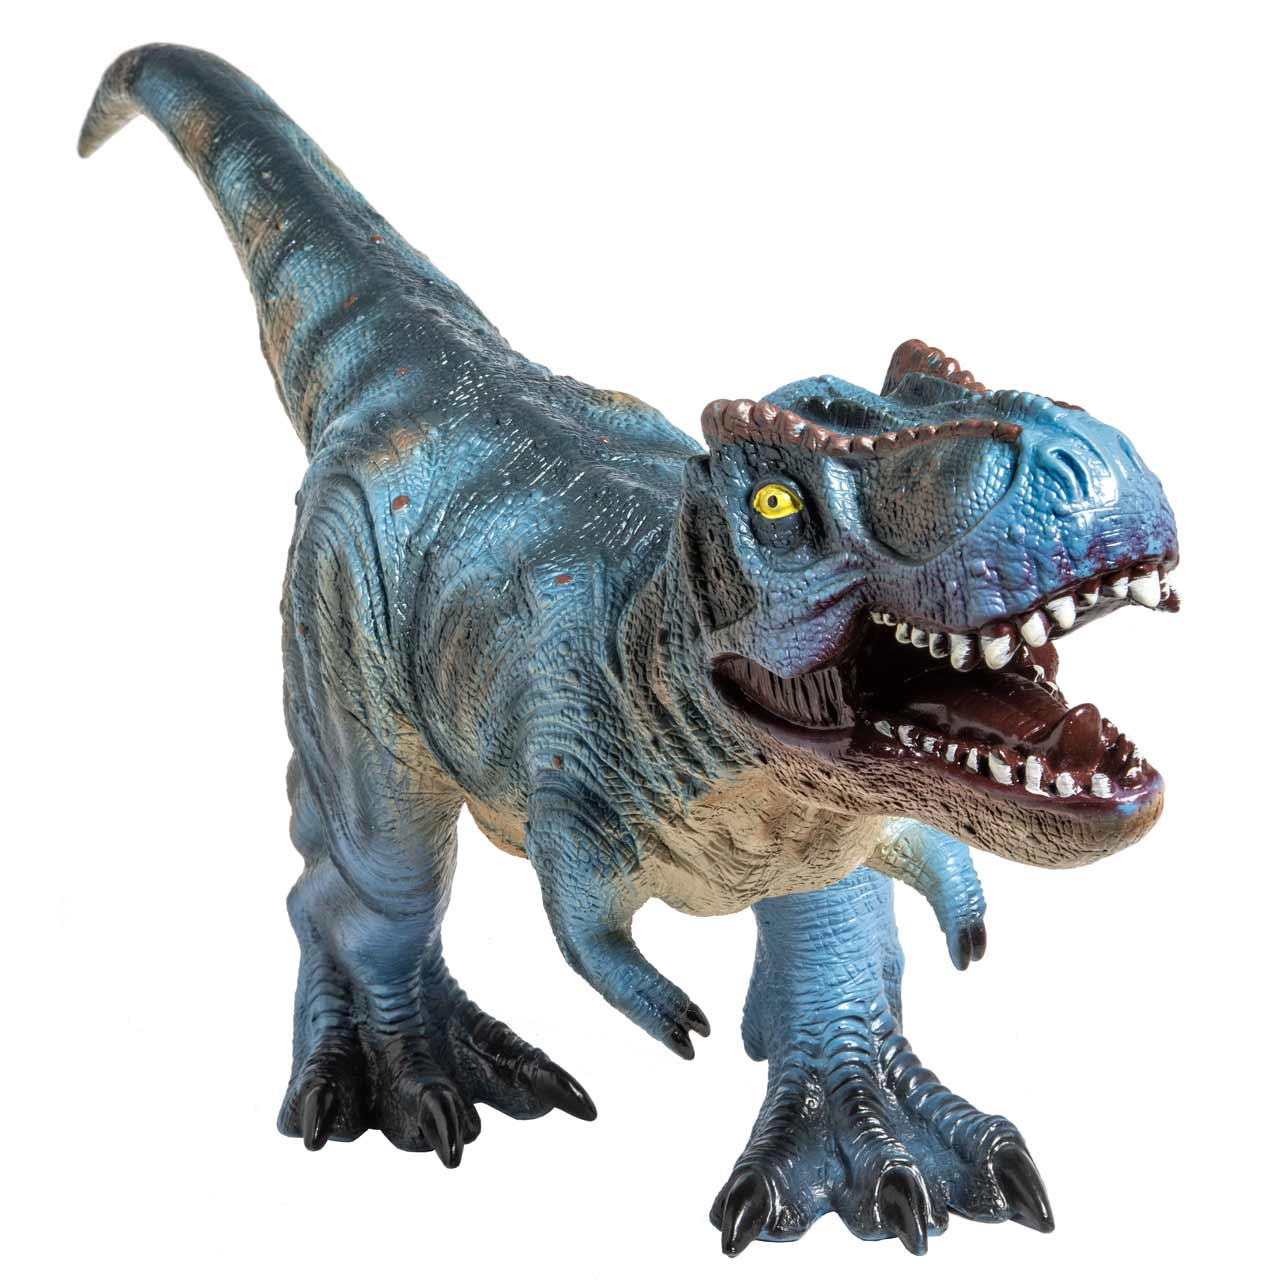 The biggest and best dinosaur play resource. Our high quality dinosaurs will teach as well as entertain.